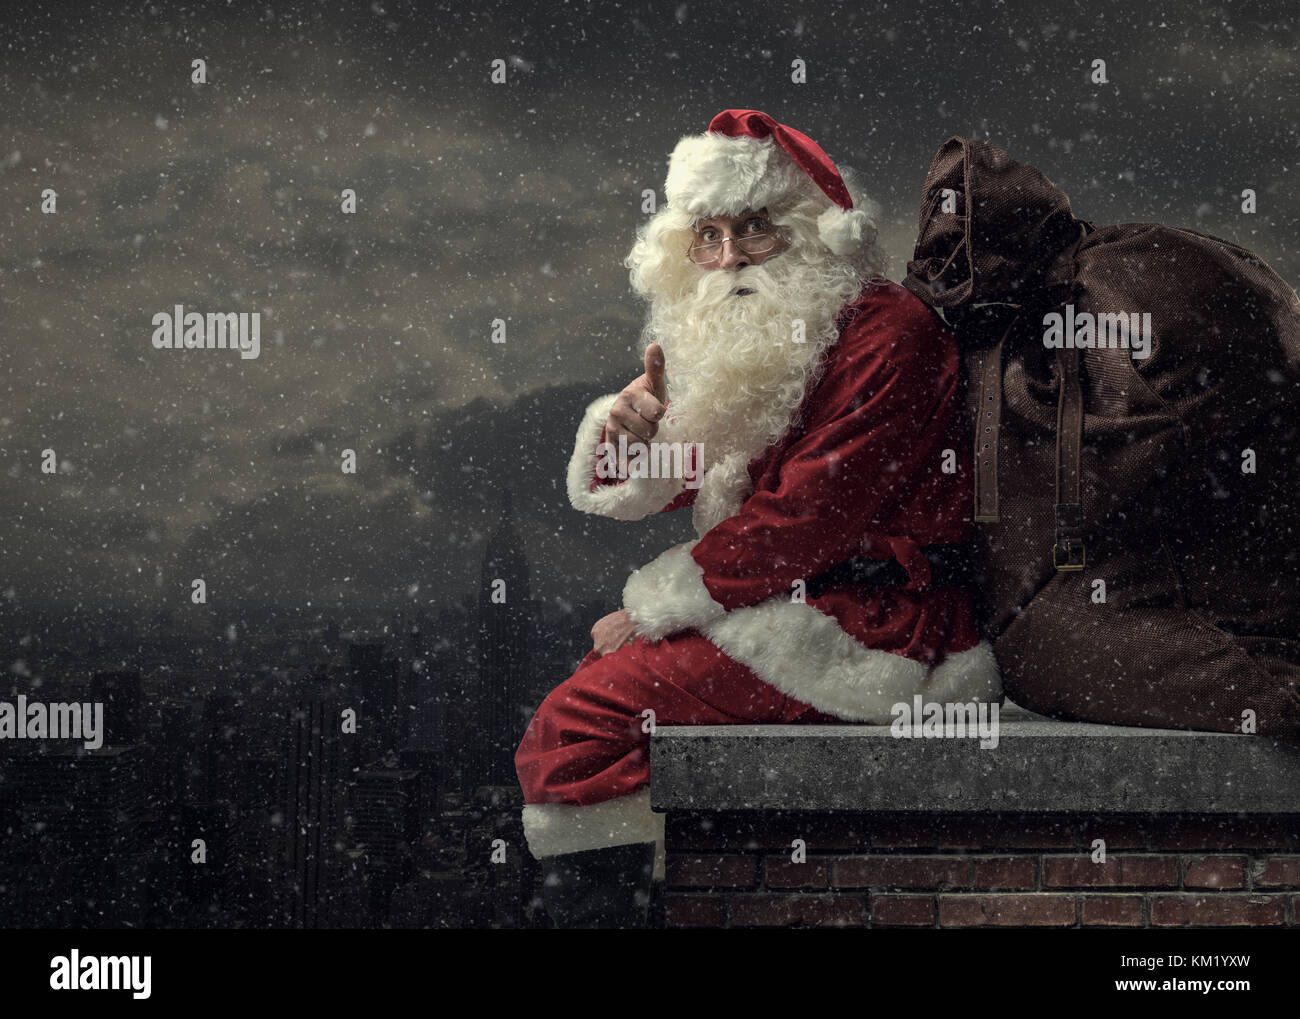 8d5842b795309 Happy Santa Claus bringing gifts on Christmas Eve  he is sitting on a roof